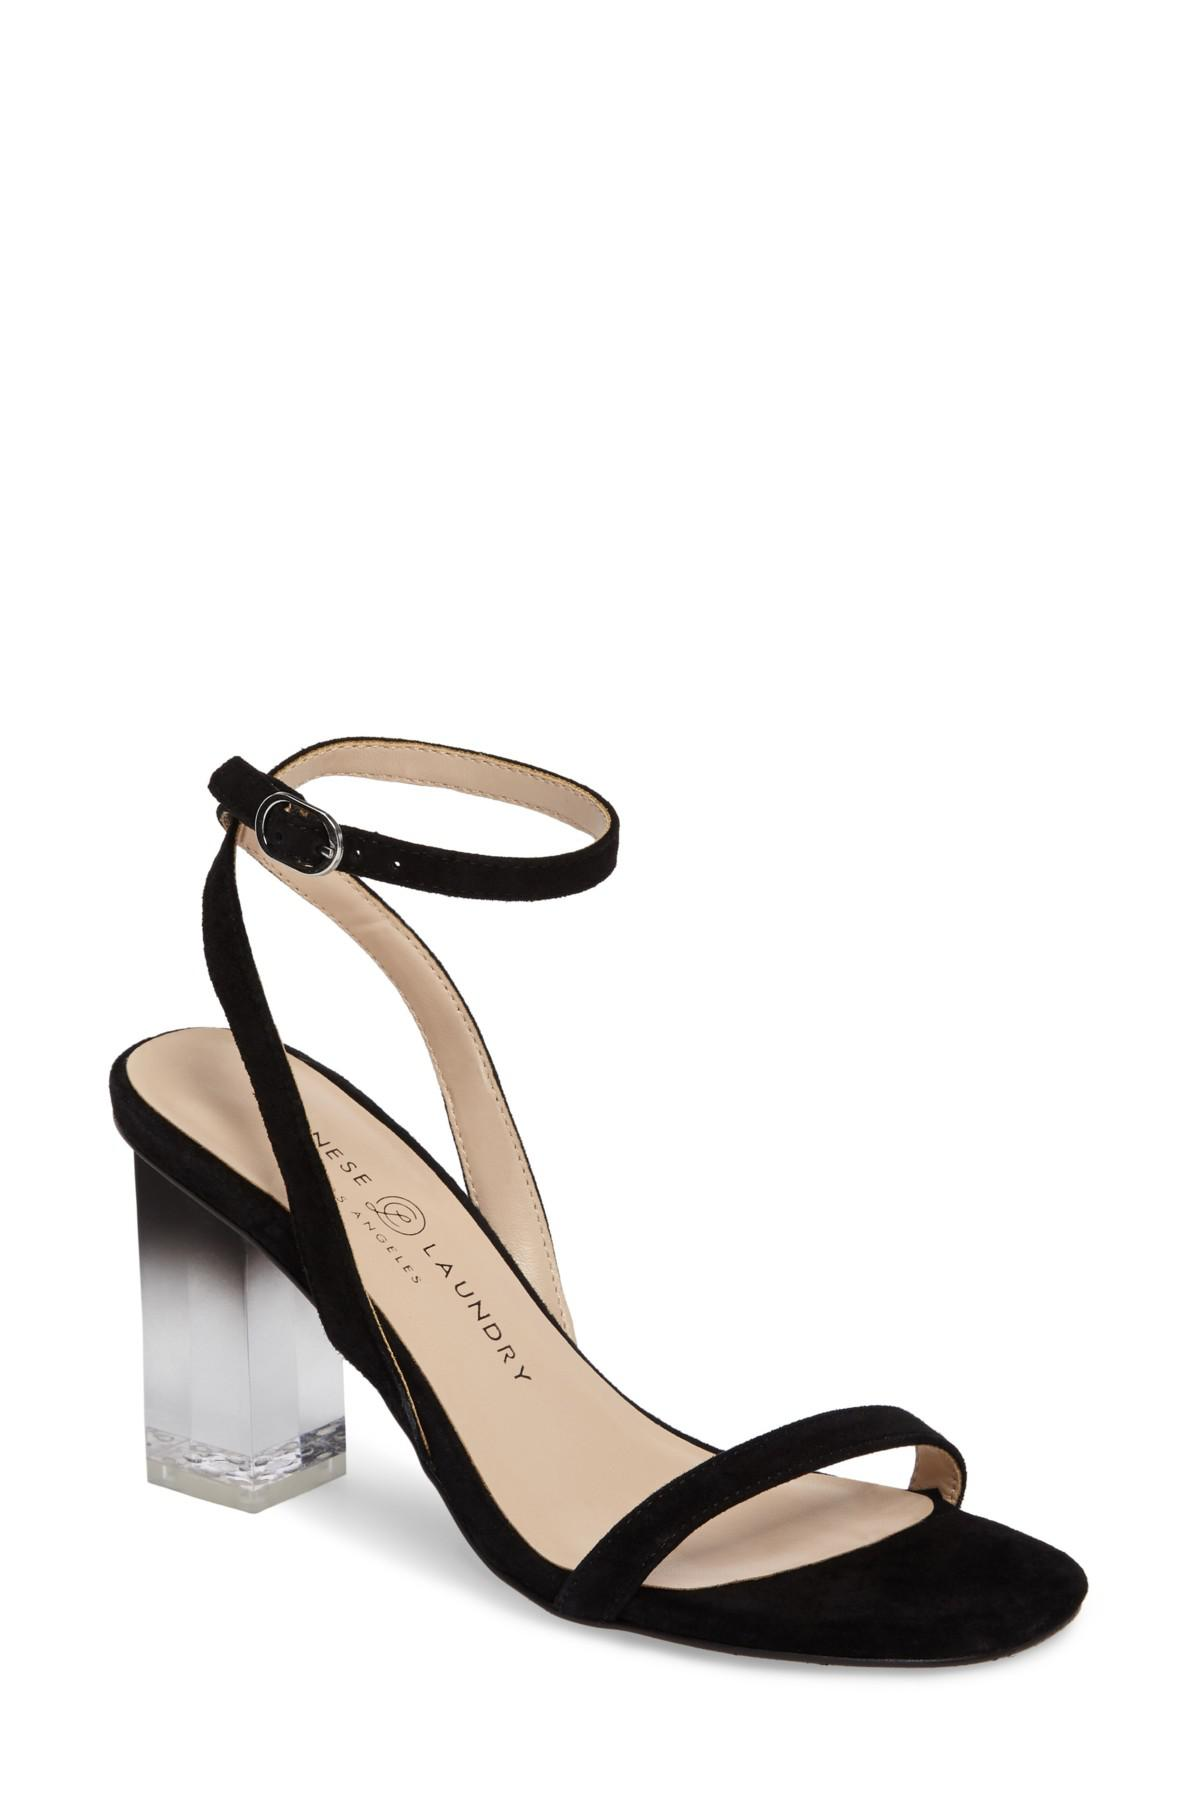 Chinese Laundry Shanie Clear Heel Leather Sandal Gm1DWDxH